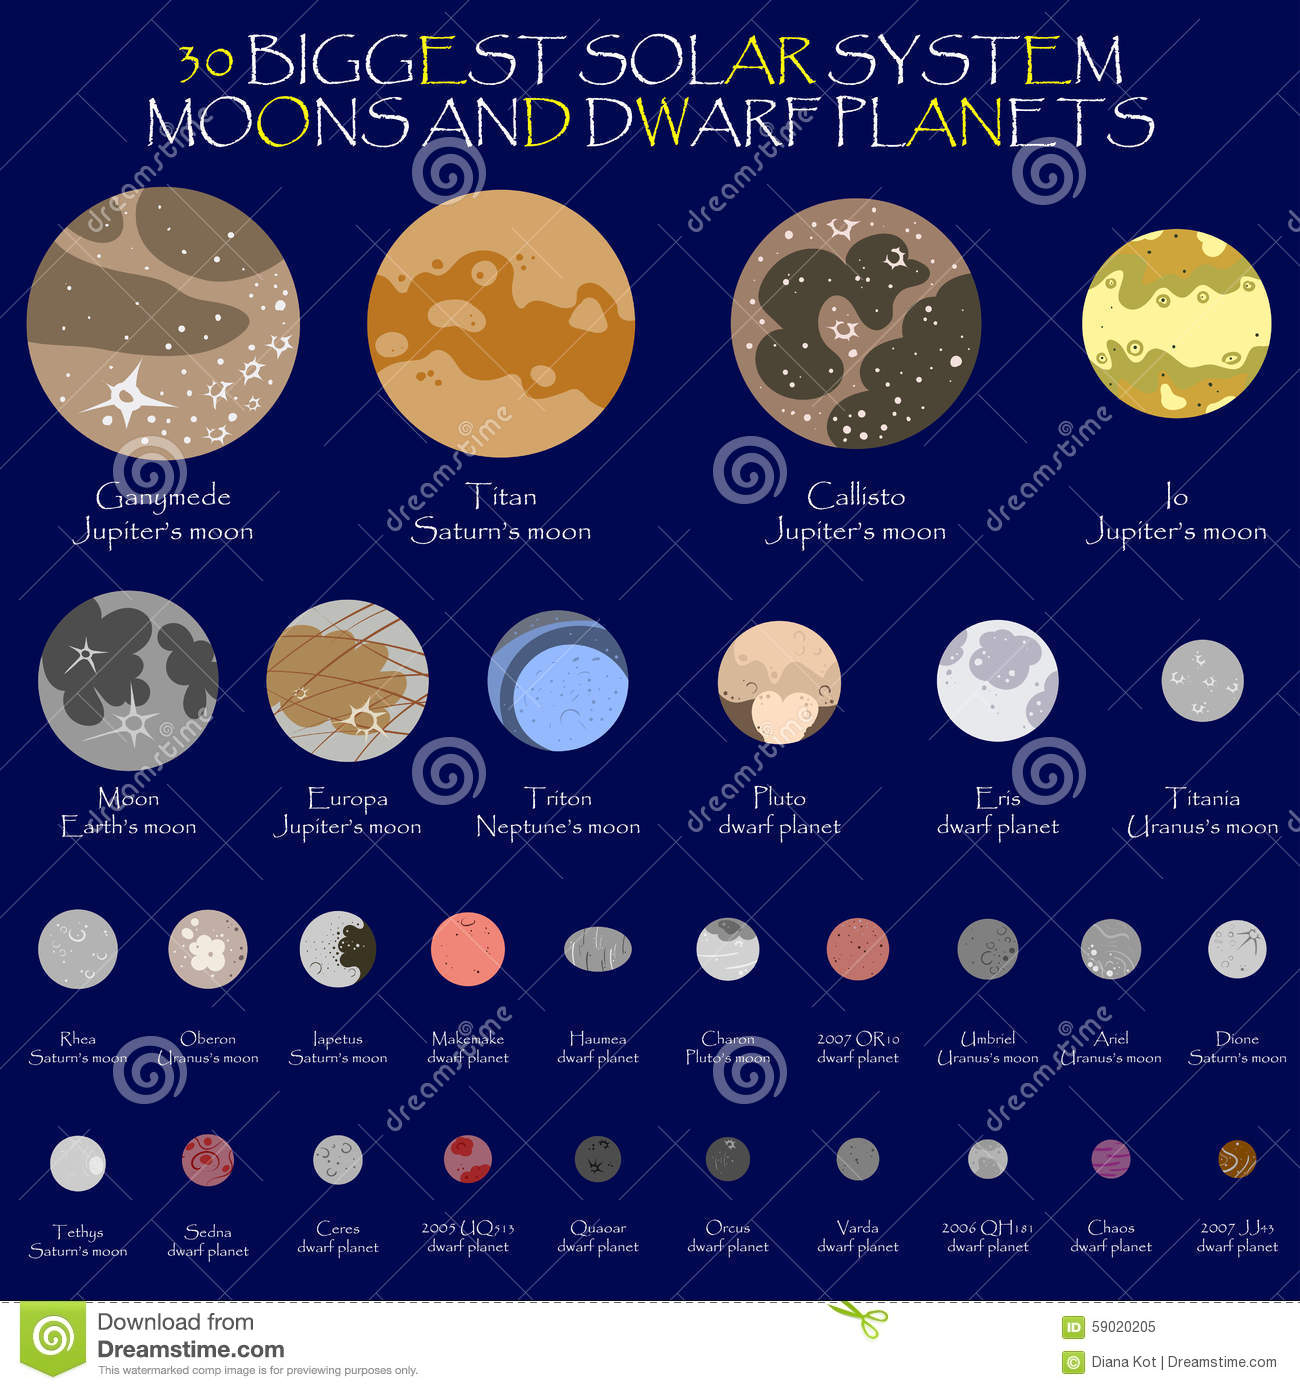 Images Of Solar System Map Including Dwarf Planets SpaceHero - Solar system map with moons